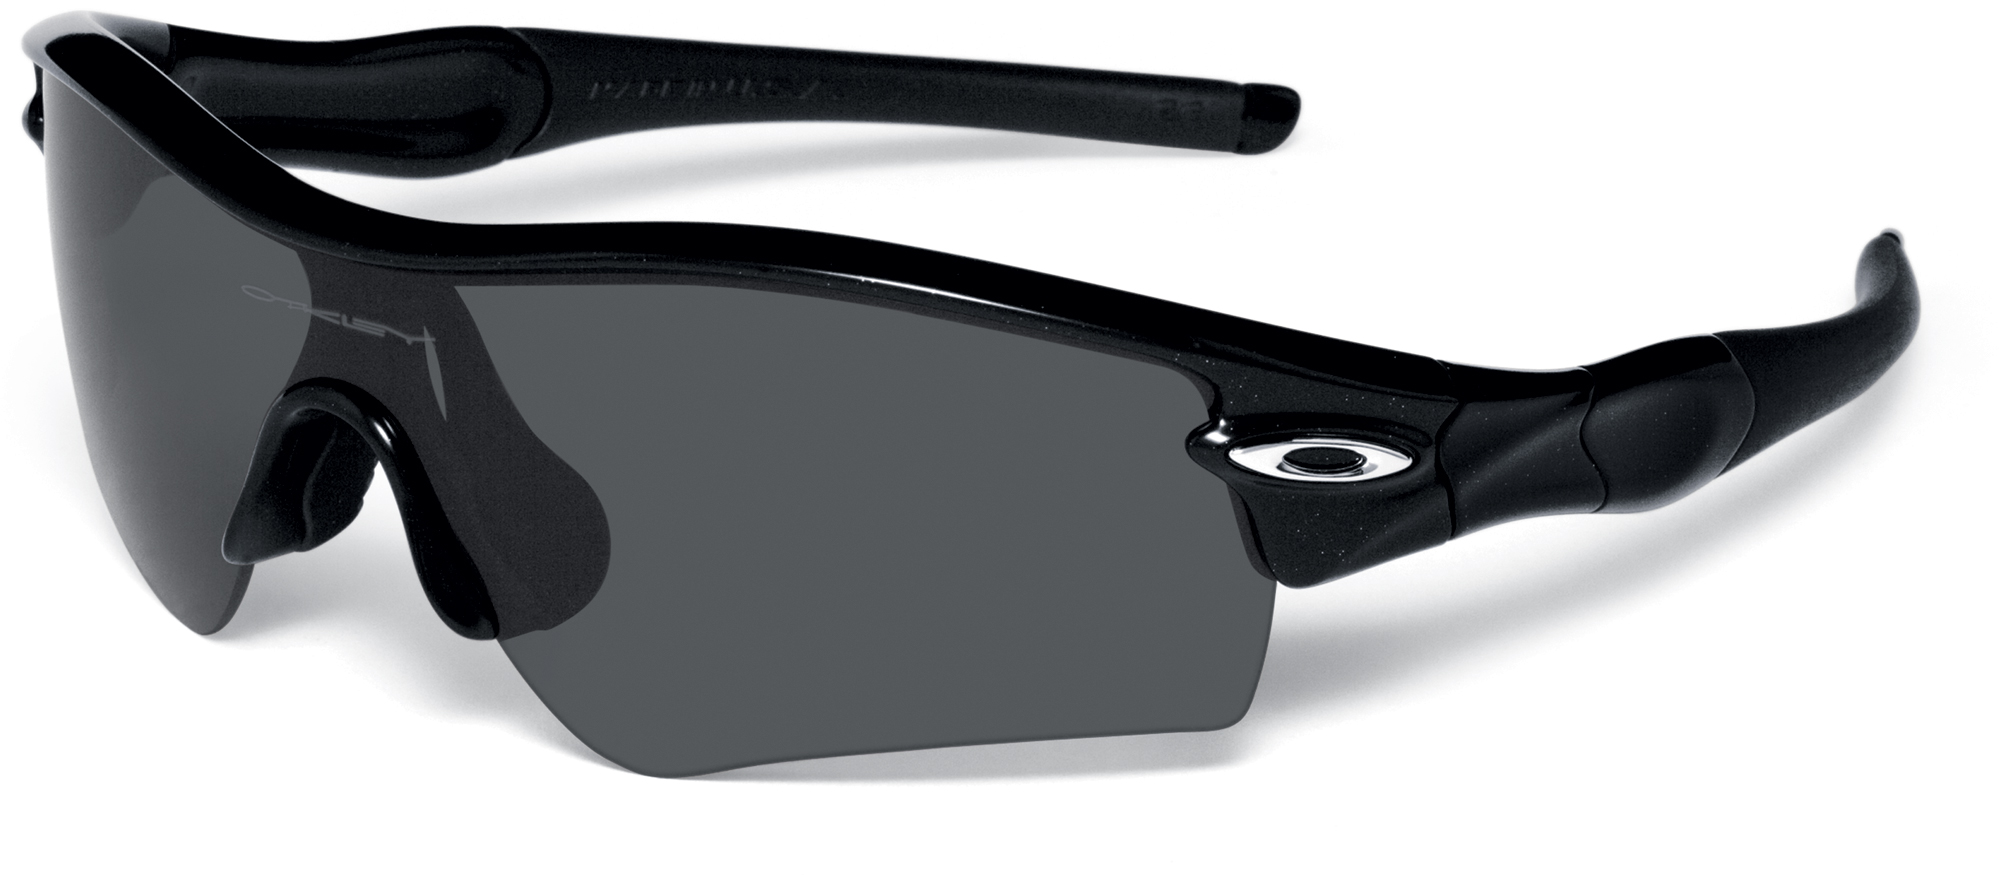 Oakley Radar Sunglasses 496s